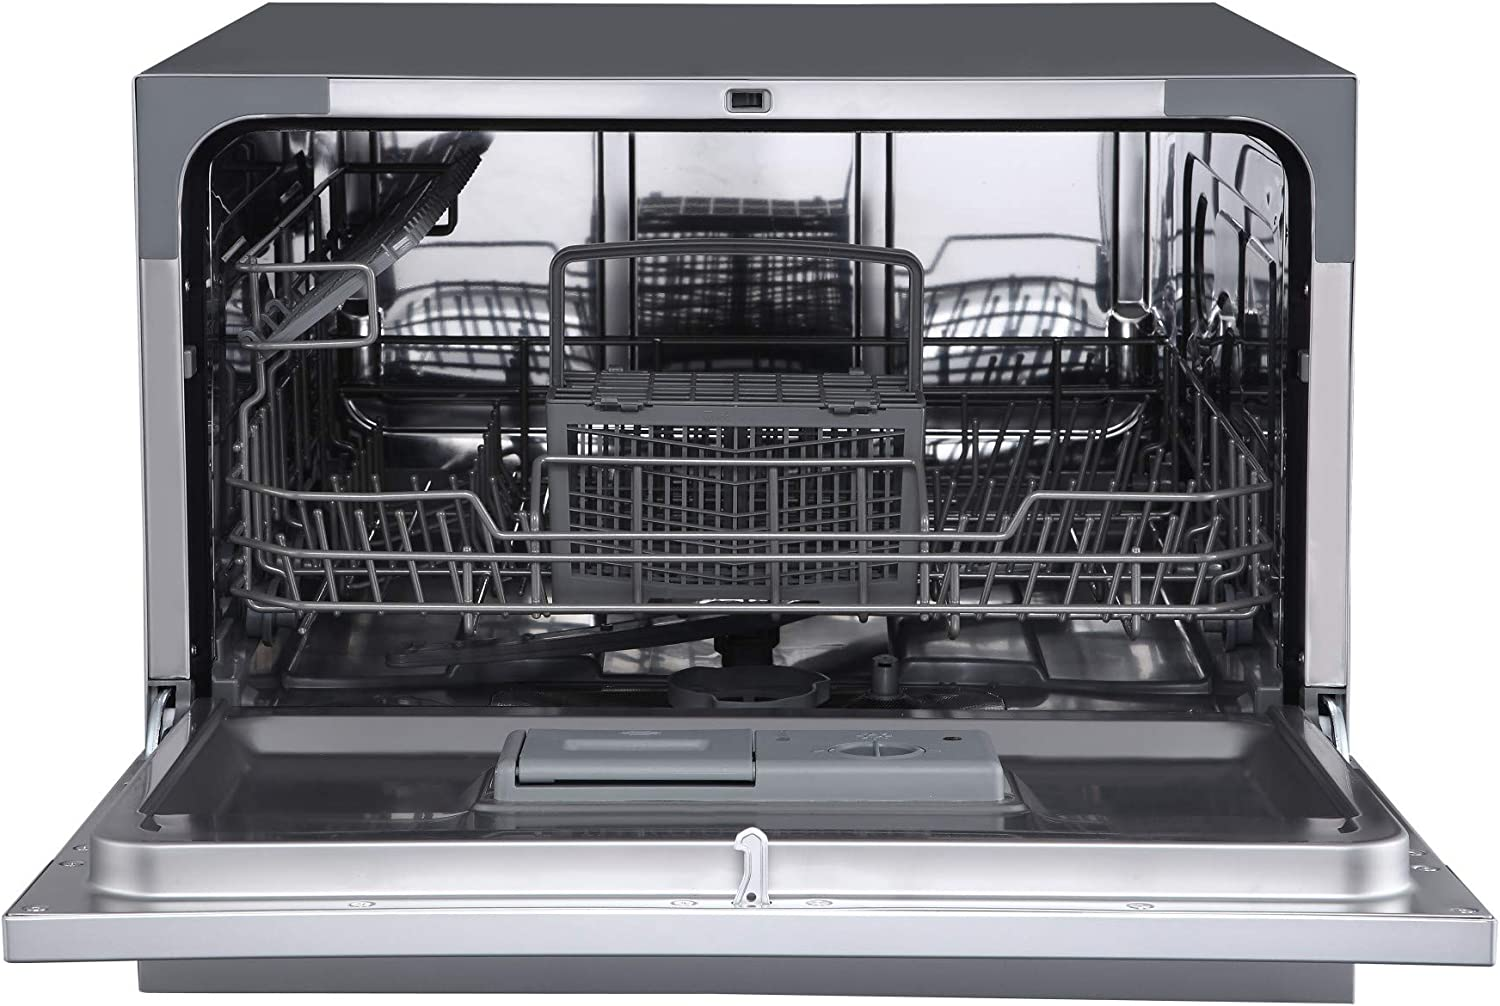 EdgeStar DWP62BL Portable Countertop Dishwasher Review